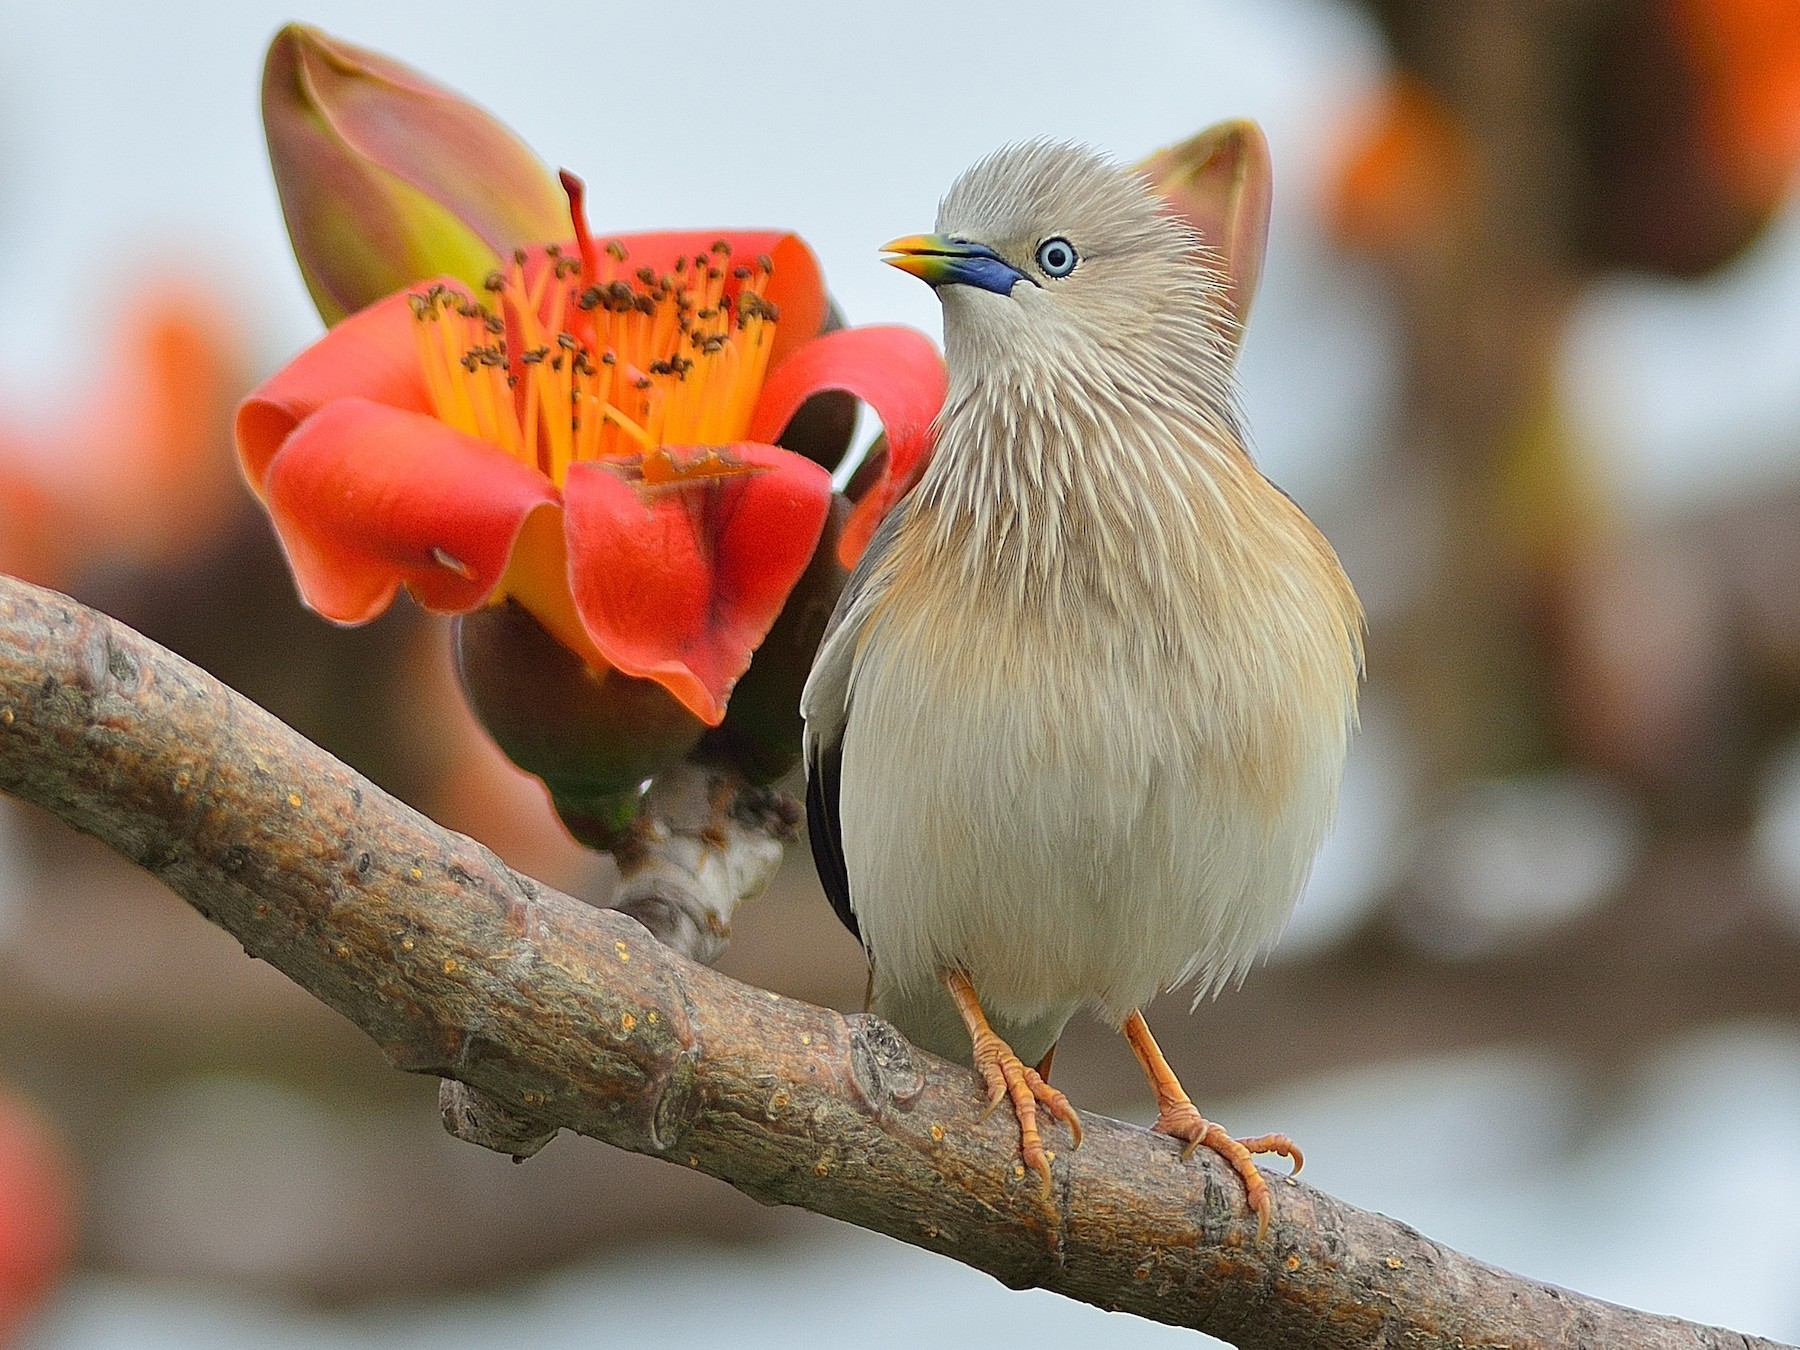 Chestnut-tailed Starling - Wbird Tsai